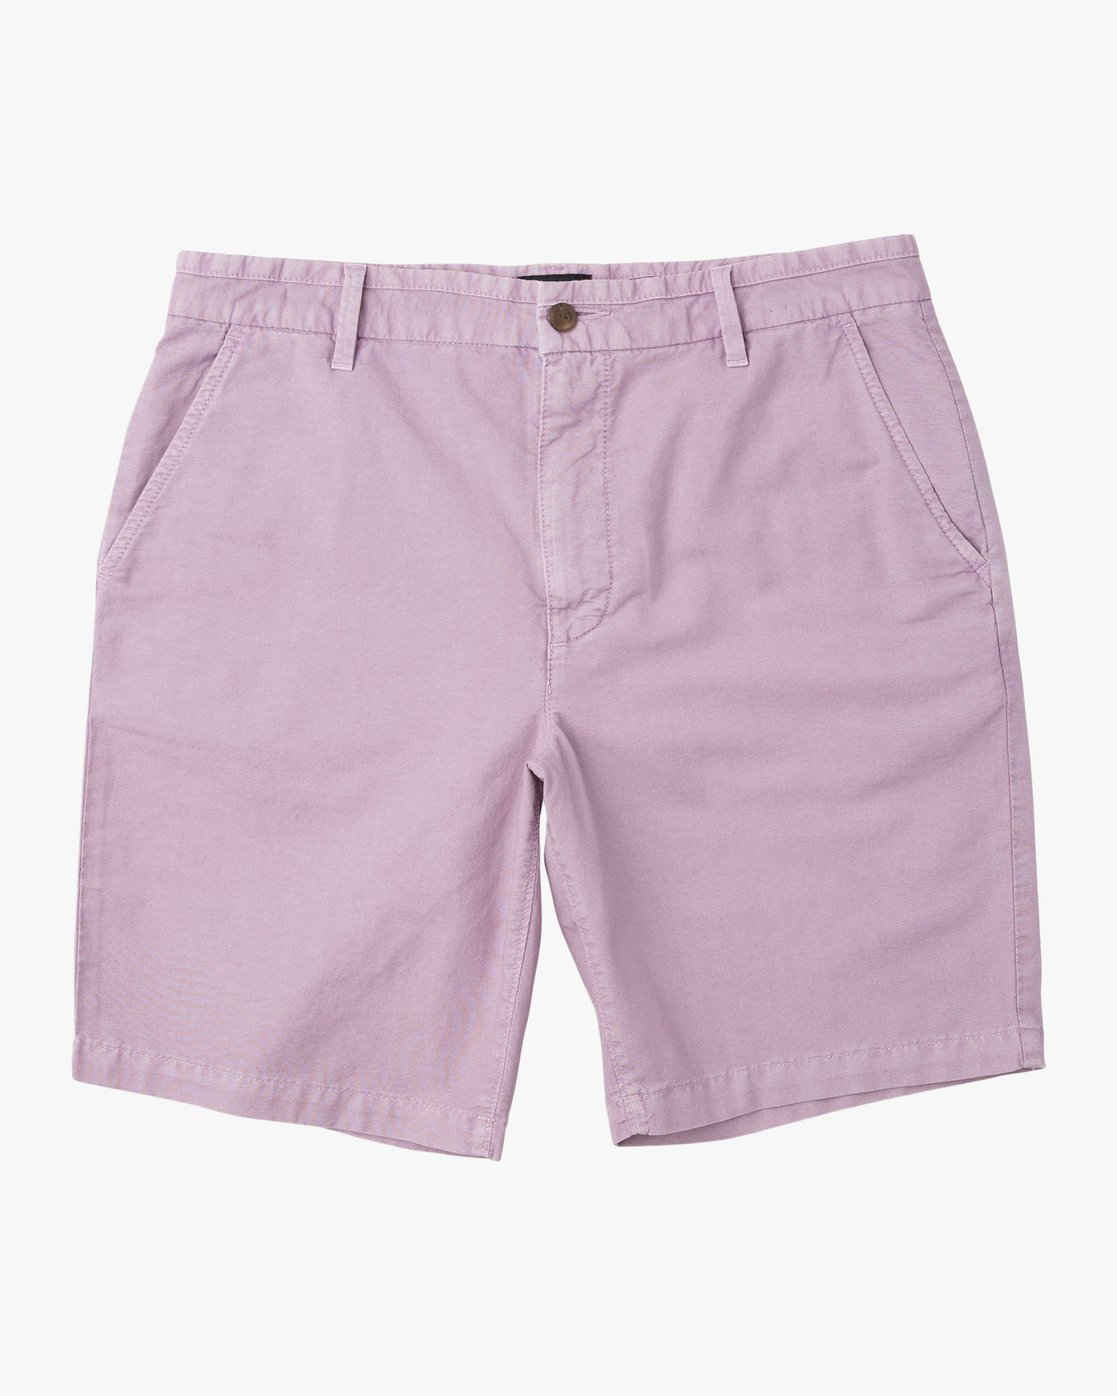 0 Butterball Over Dye Short Purple M205PRBU RVCA